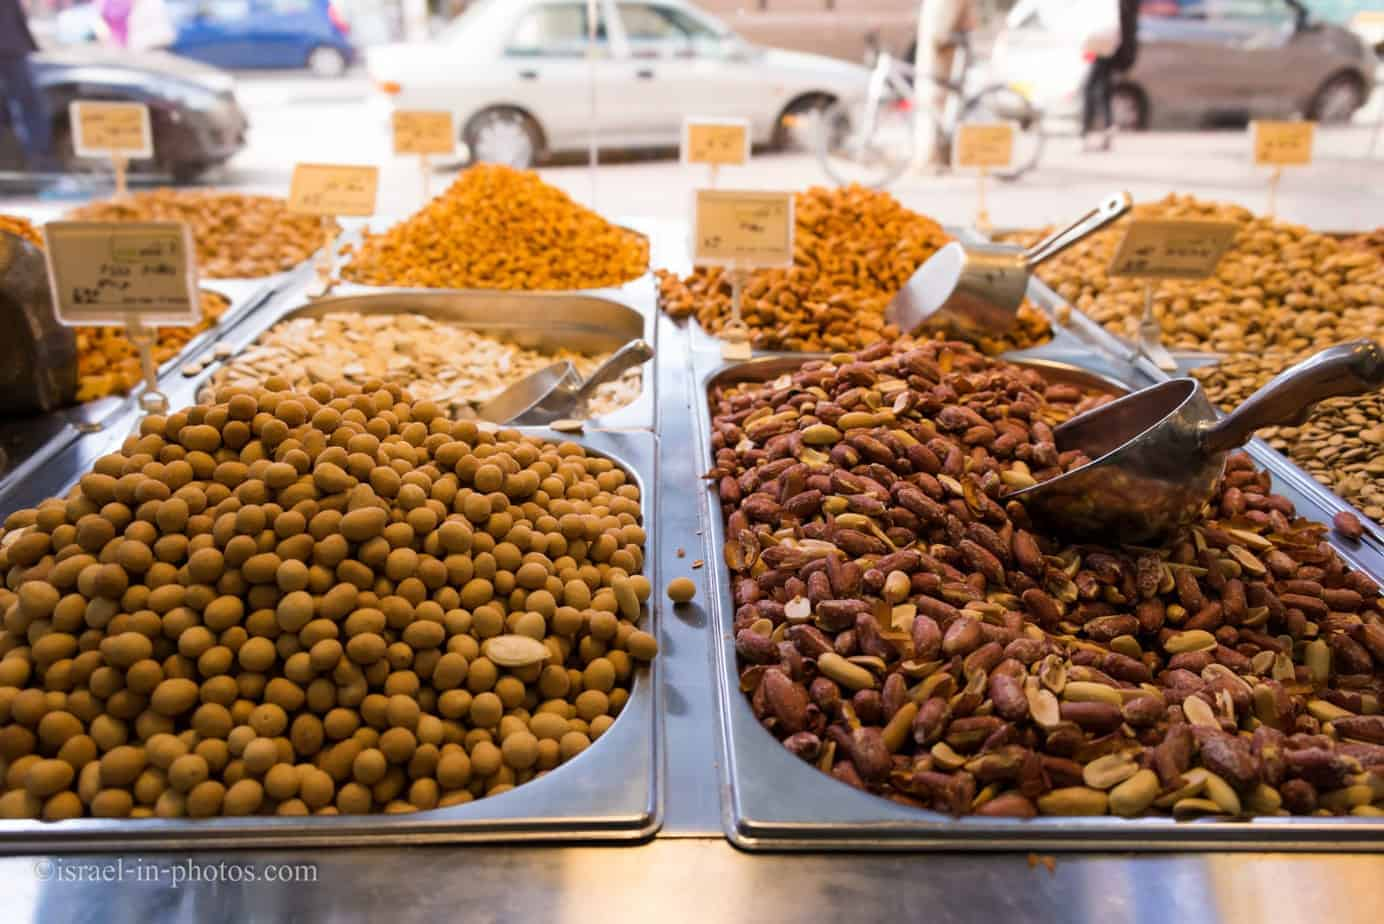 Nuts and seeds in a store at Kfar Saba